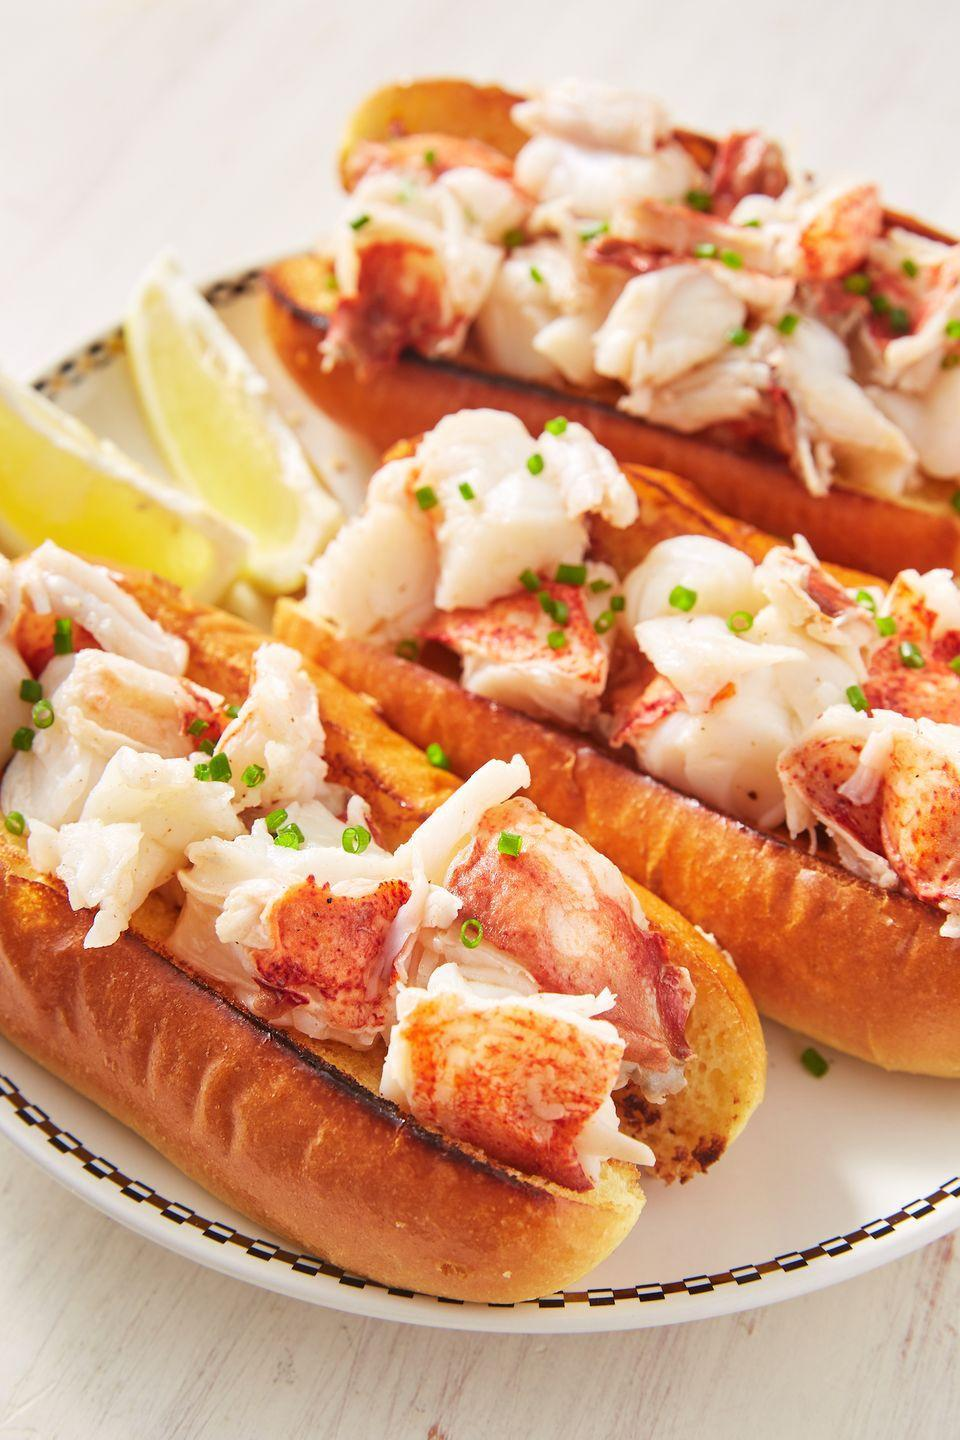 """<p>The toasted buns are EVERYTHING.</p><p>Get the recipe from <a href=""""https://www.delish.com/cooking/recipe-ideas/a28510797/best-lobster-roll-recipe/"""" rel=""""nofollow noopener"""" target=""""_blank"""" data-ylk=""""slk:Delish"""" class=""""link rapid-noclick-resp"""">Delish</a>.</p>"""